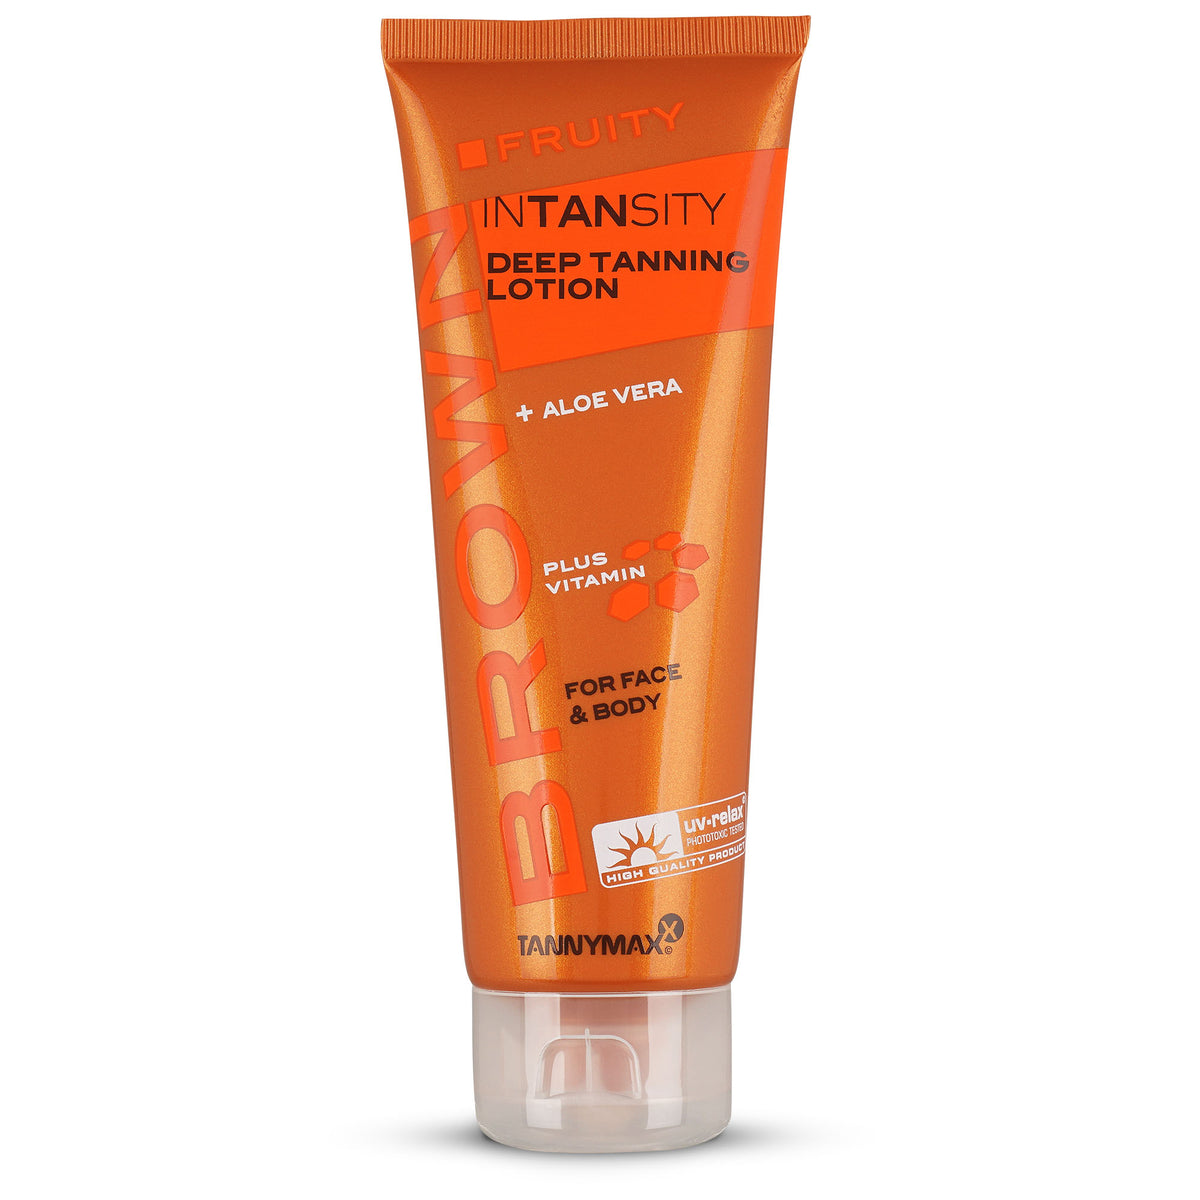 Fruity Intansity Deep Tanning Lotion